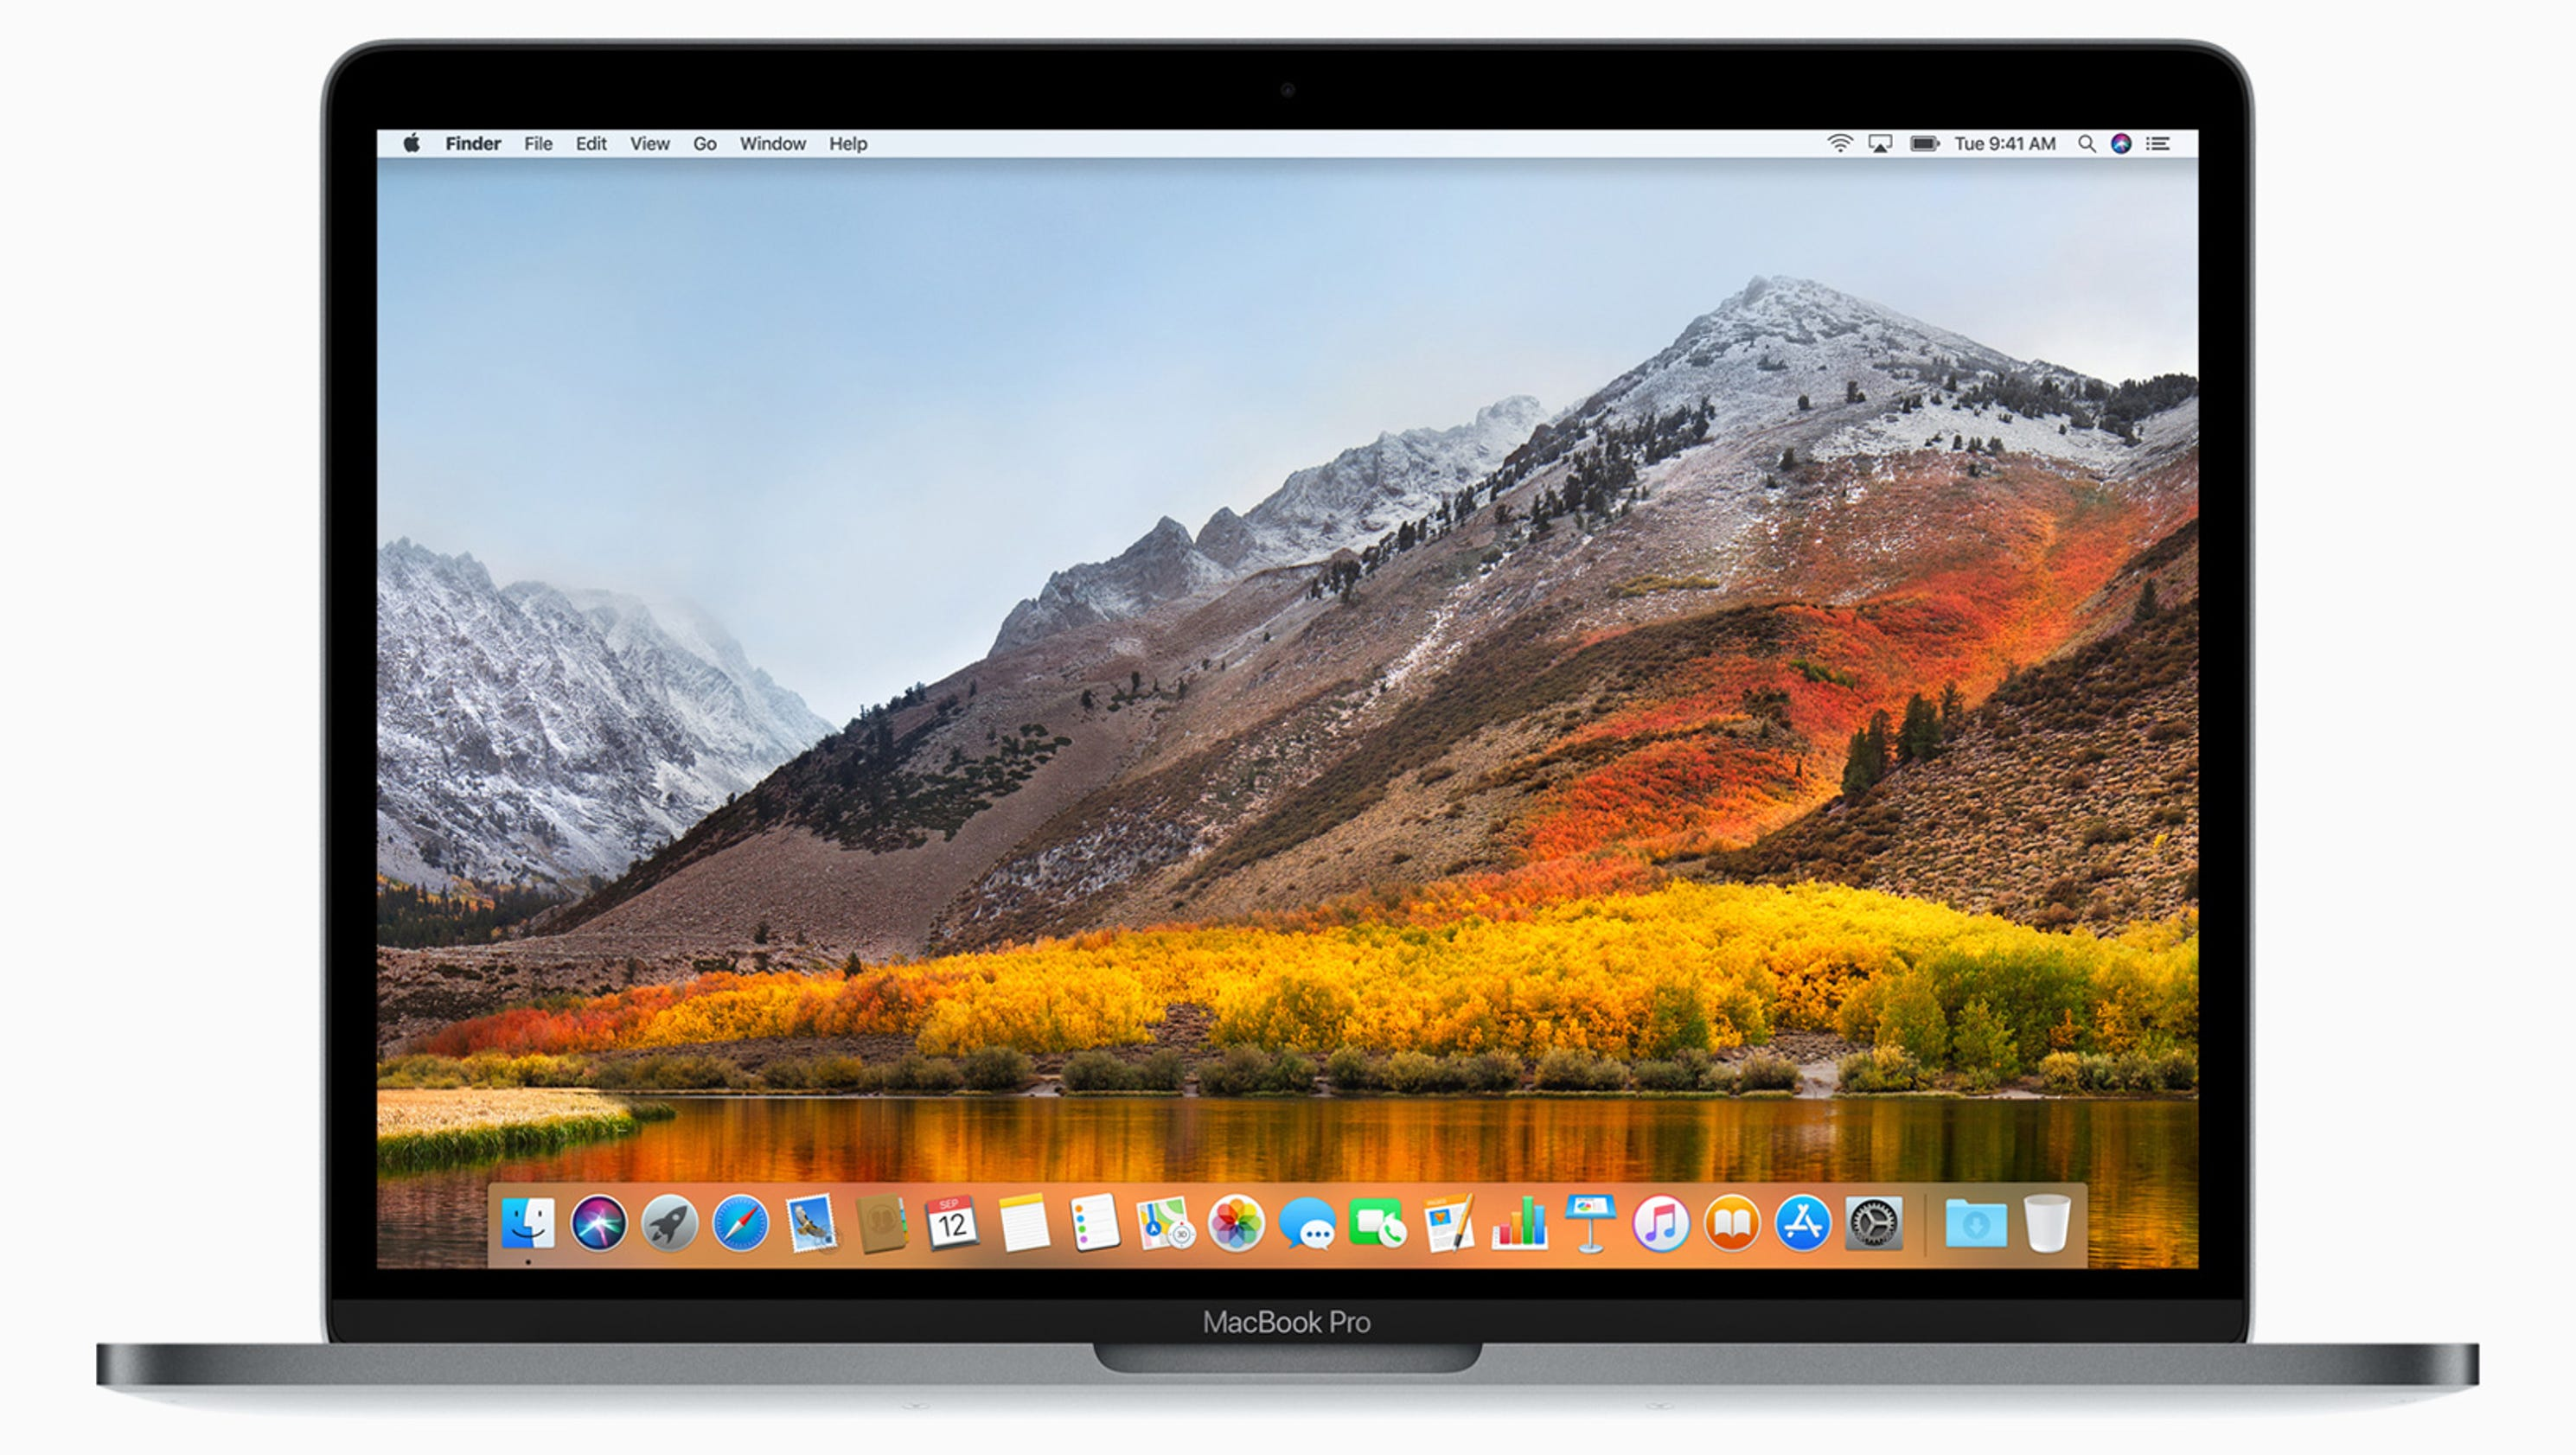 how to get sticknodes on mac